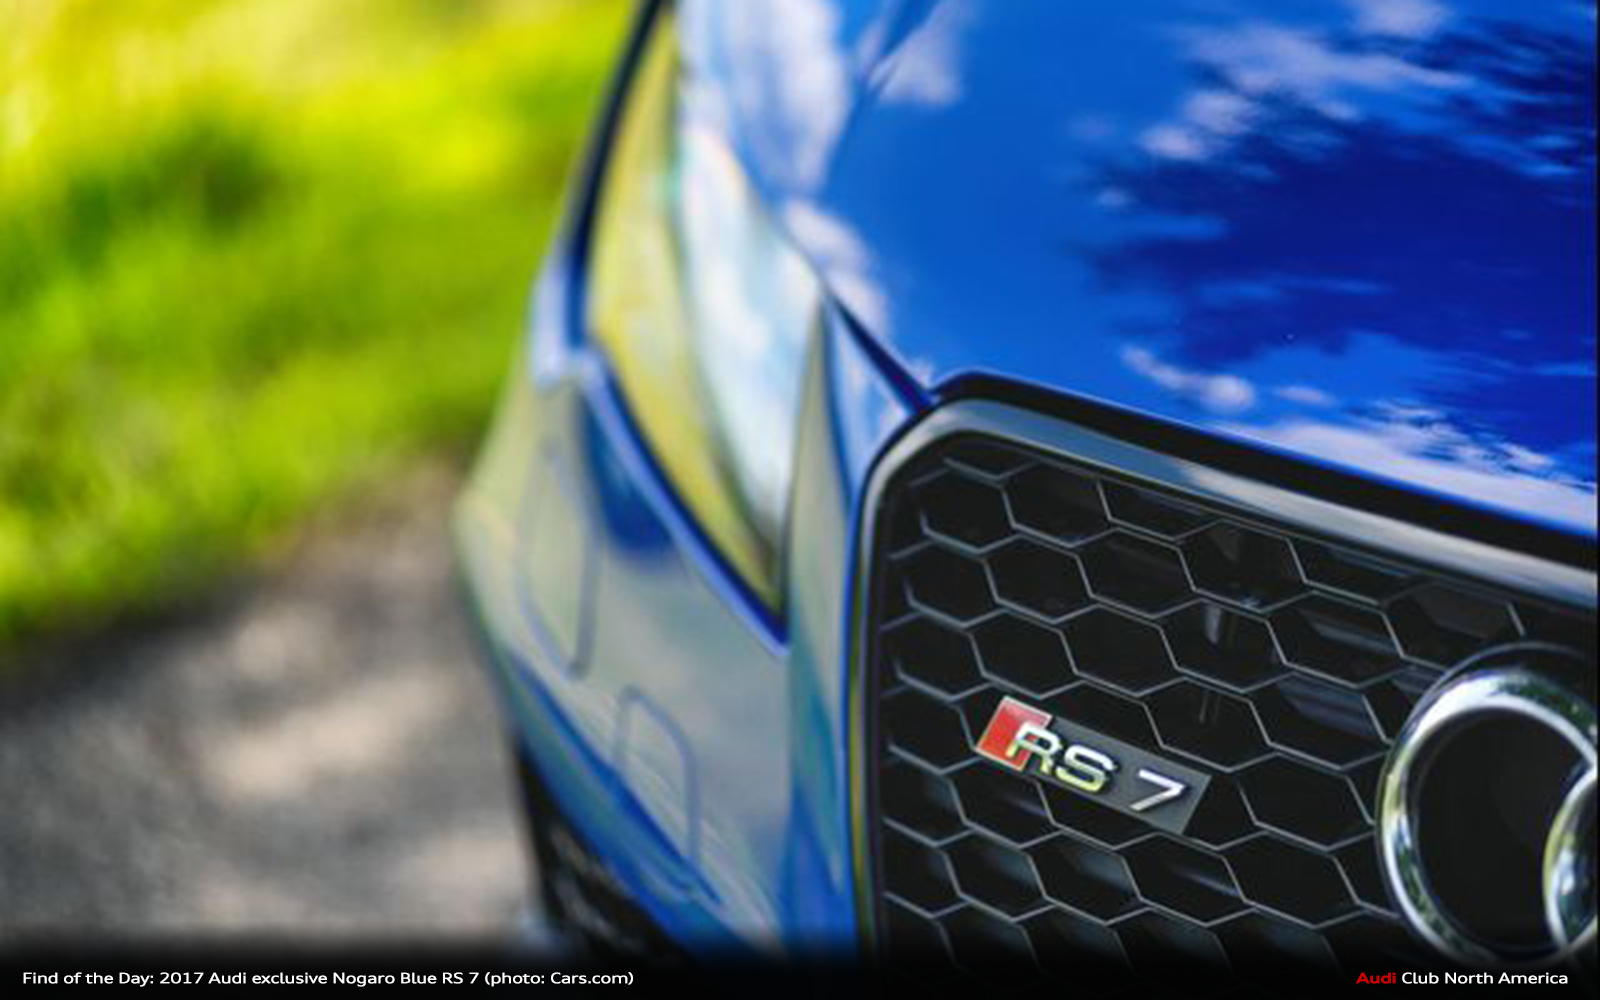 Find of the Day: 2014 Audi exclusive Nogaro Blue RS 7